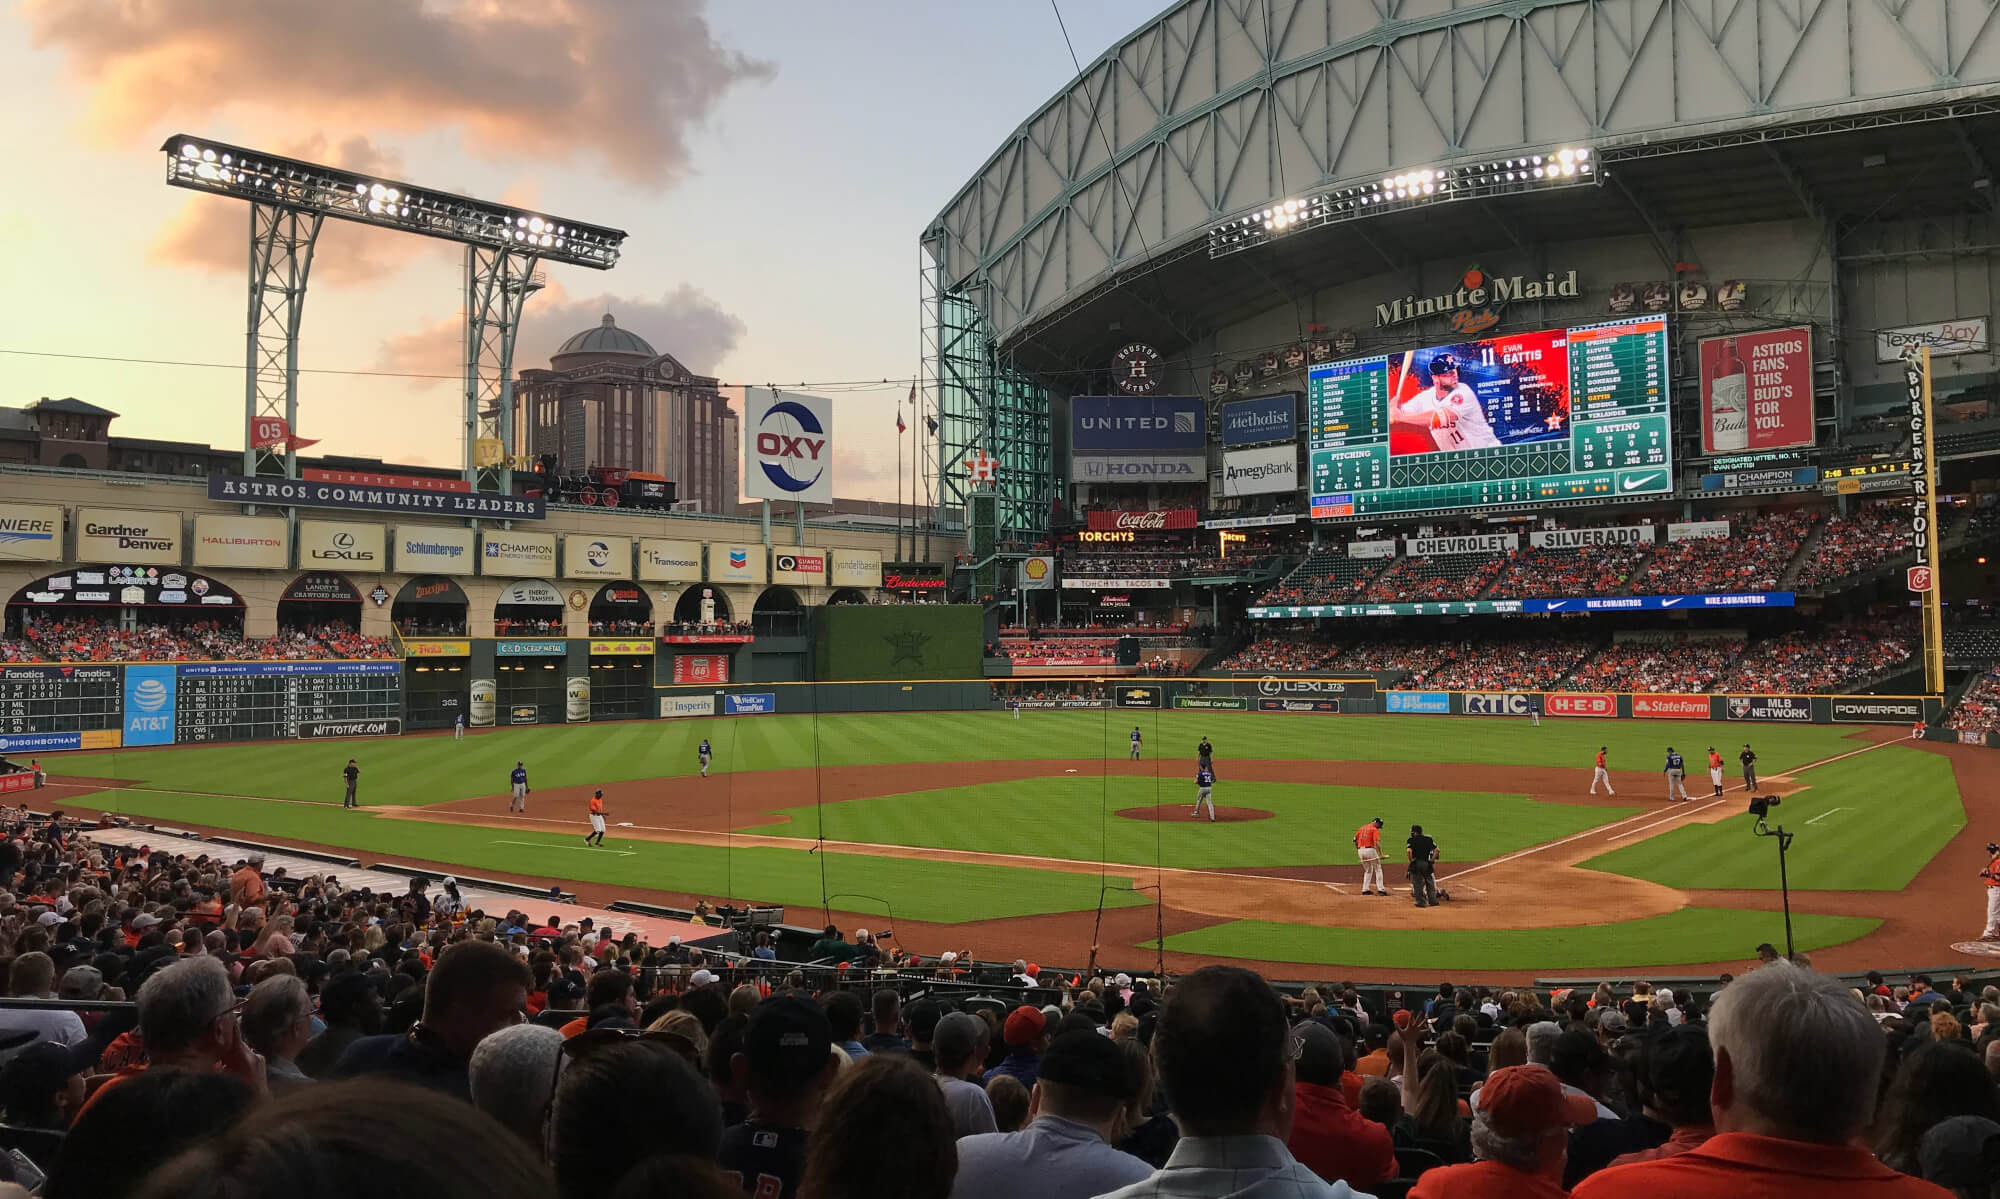 Astros Field in Houston, Texas